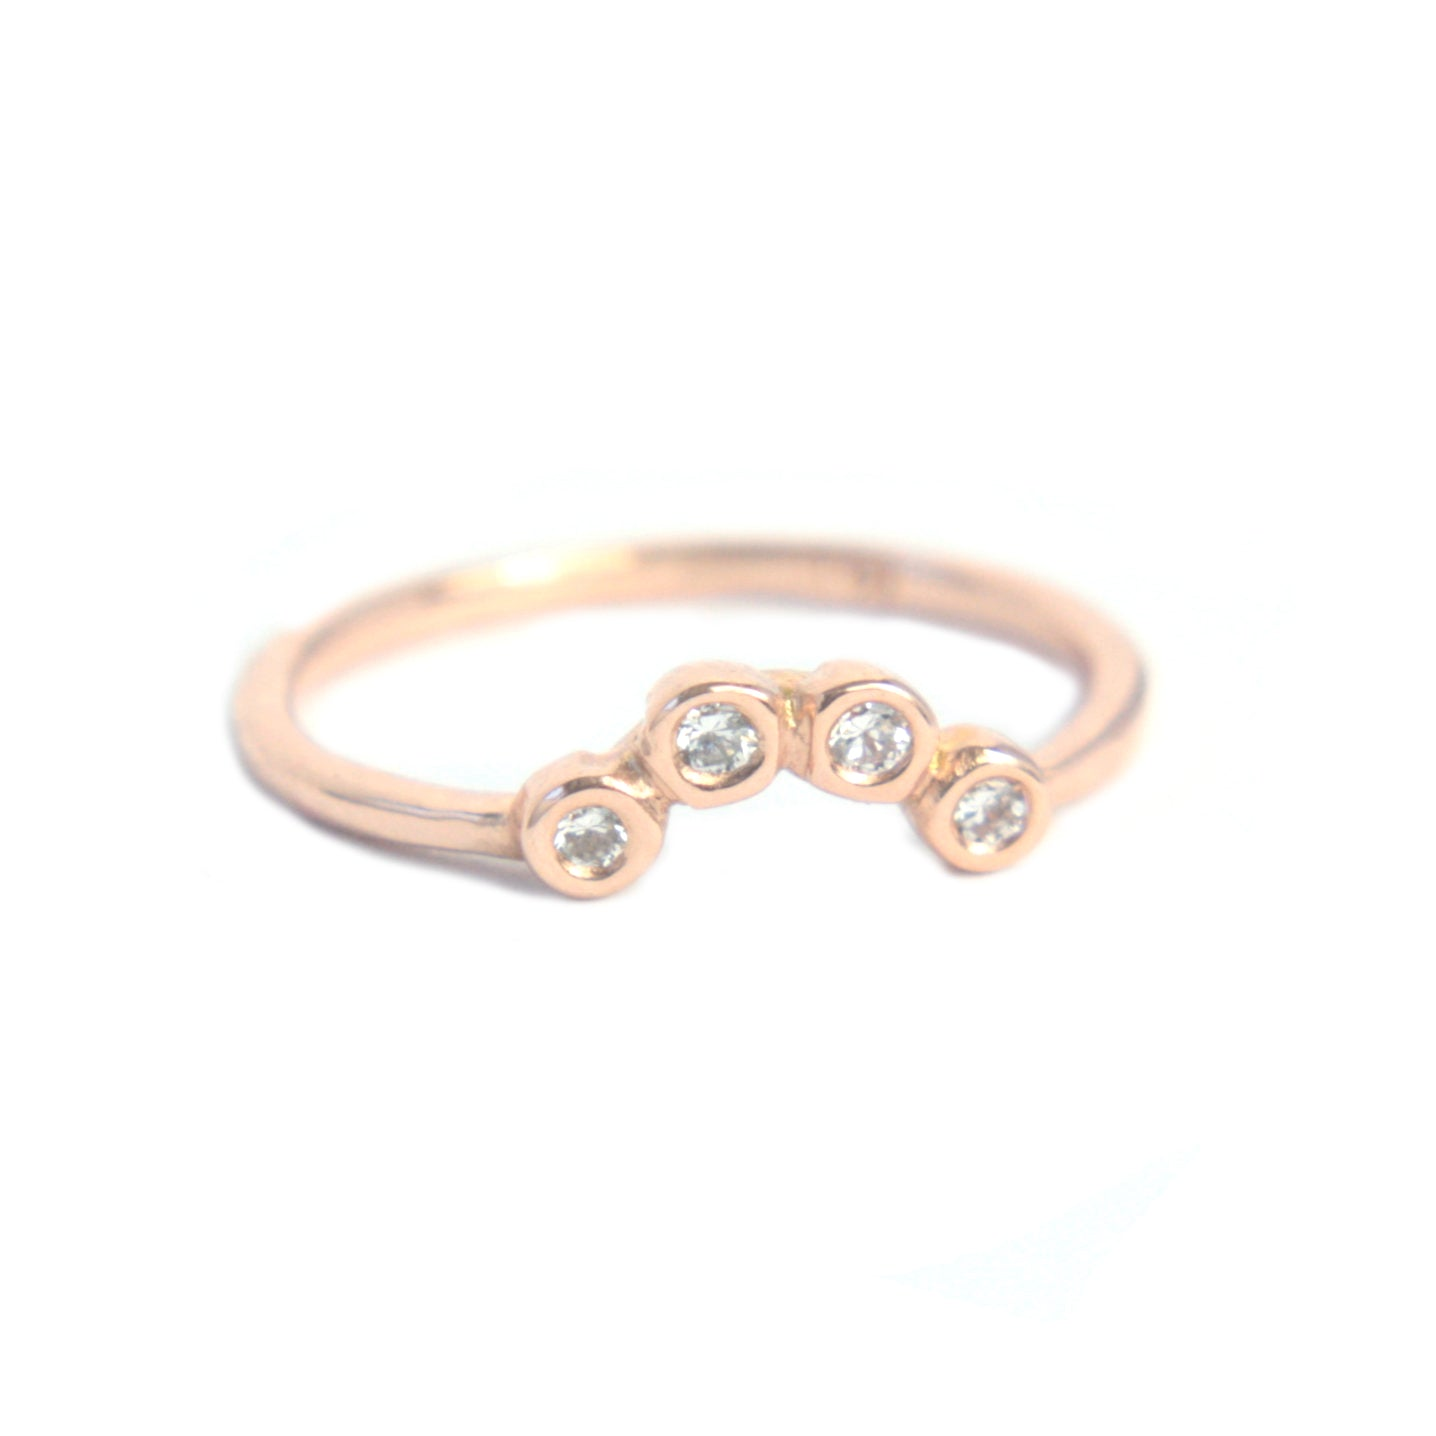 Diamond Wave Shape Ring 14k Gold Four Diamond Ring - Manari Design